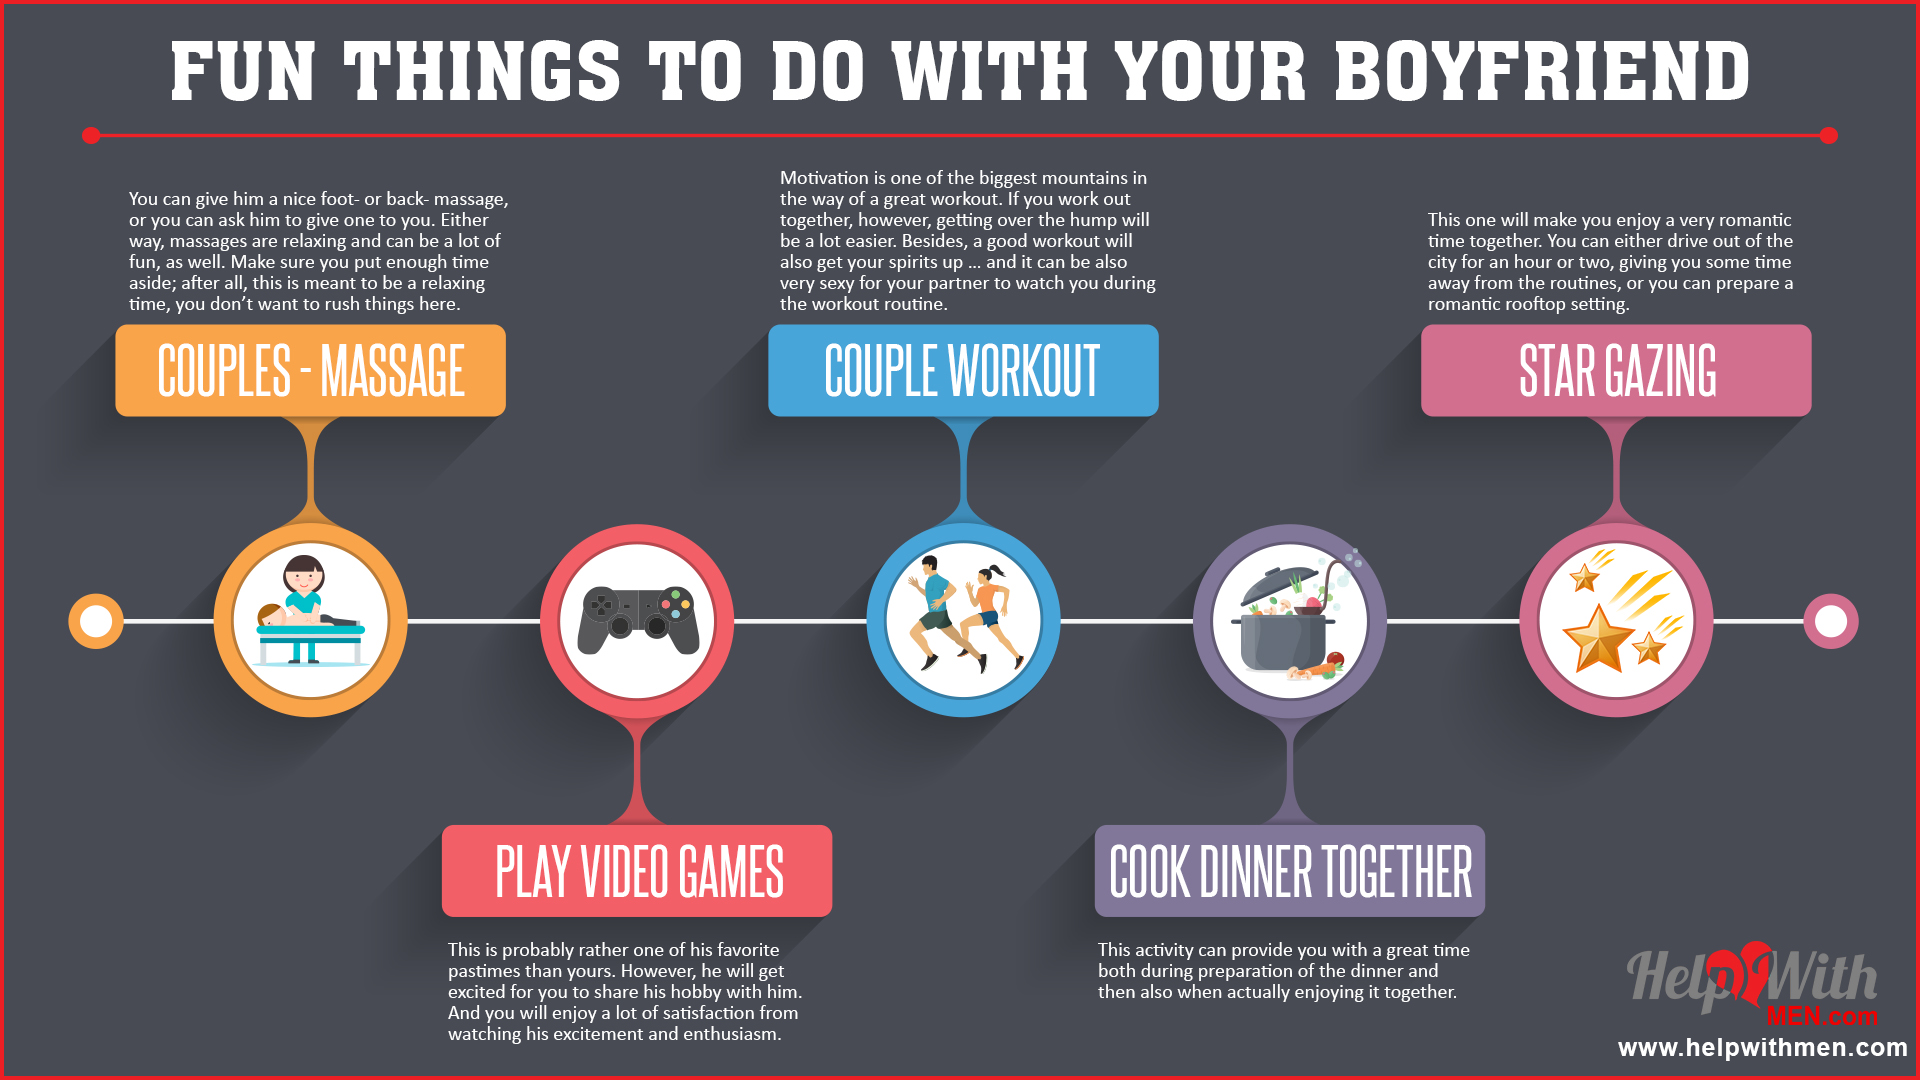 Things To Do With Your Boyfriend  25 Fun Activities